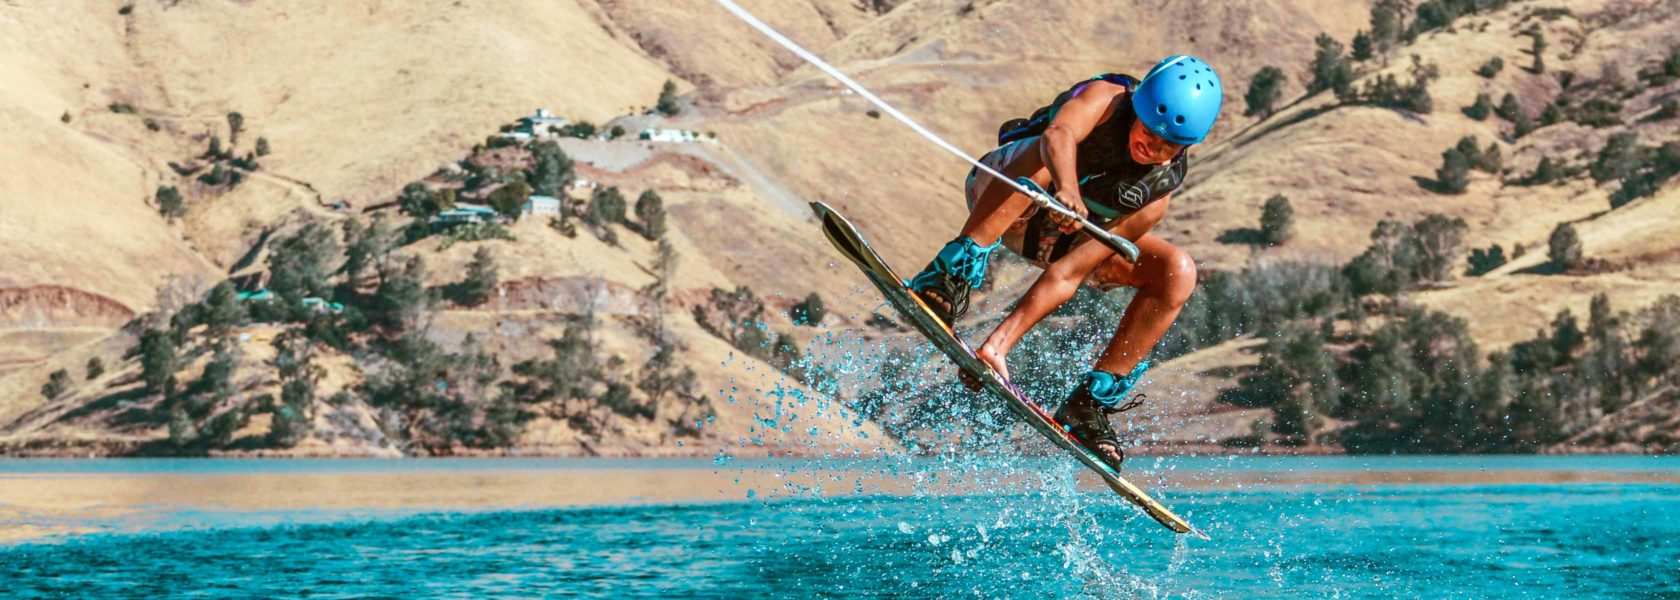 A camper wakeboarding and jumping in the air.